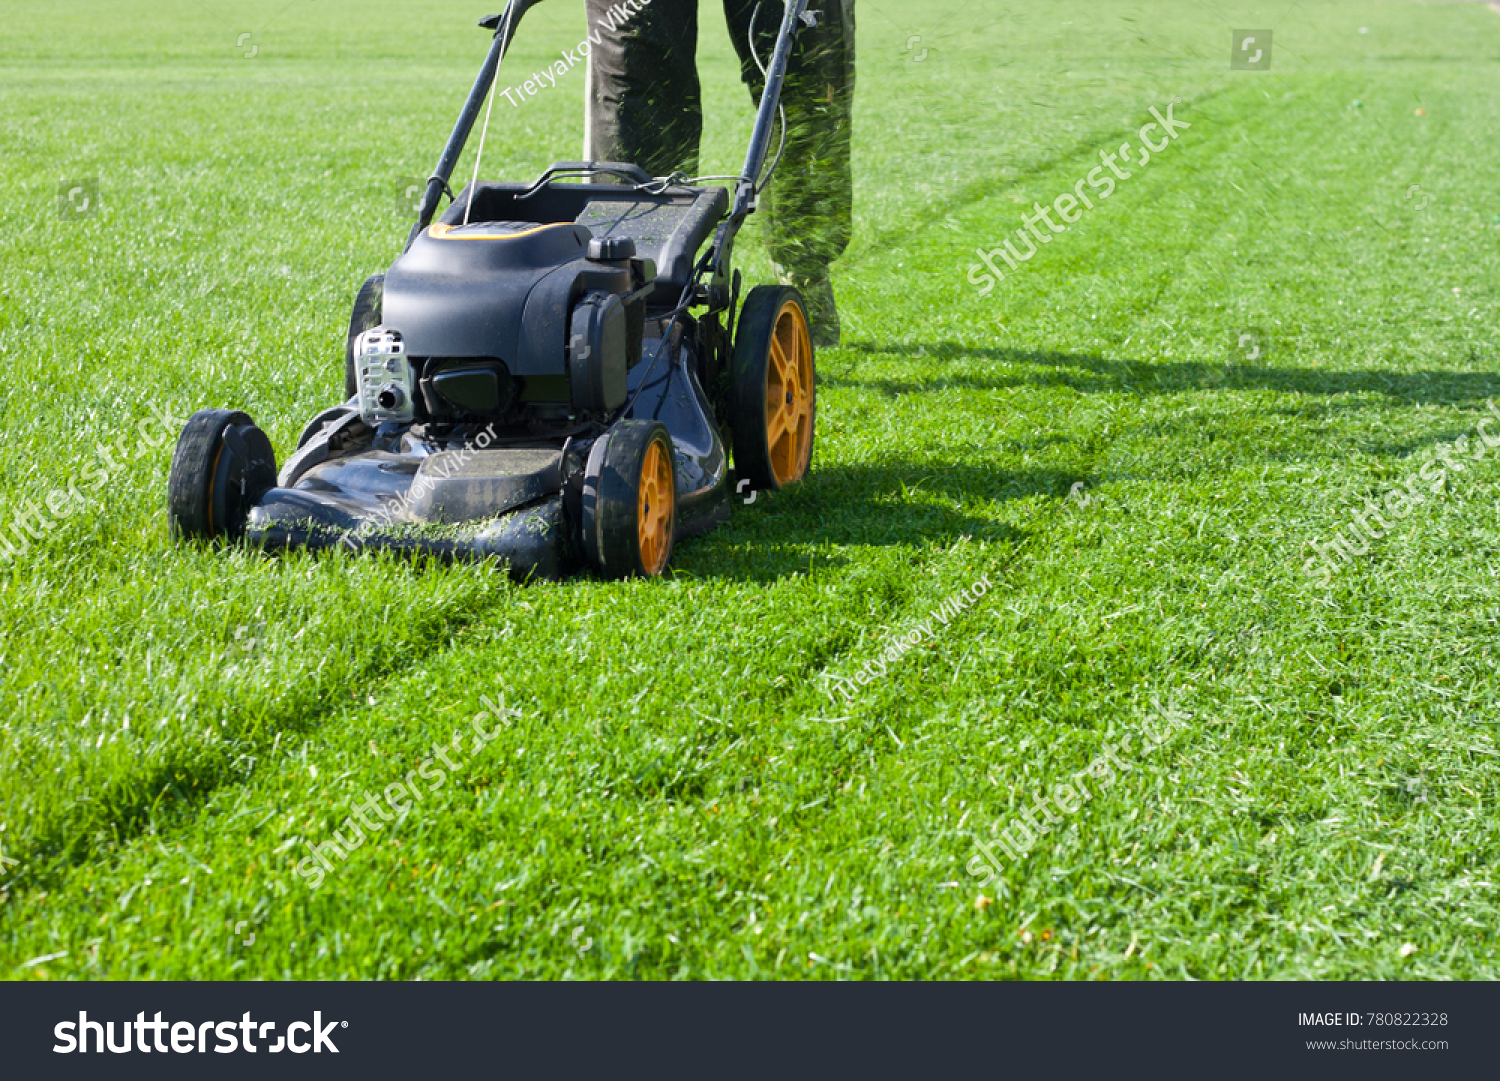 Worker guy shake pour grass from lawn mower bag into wheelbarrow. Garden meadow lawn cutting. Summer works in garden. Static shot.